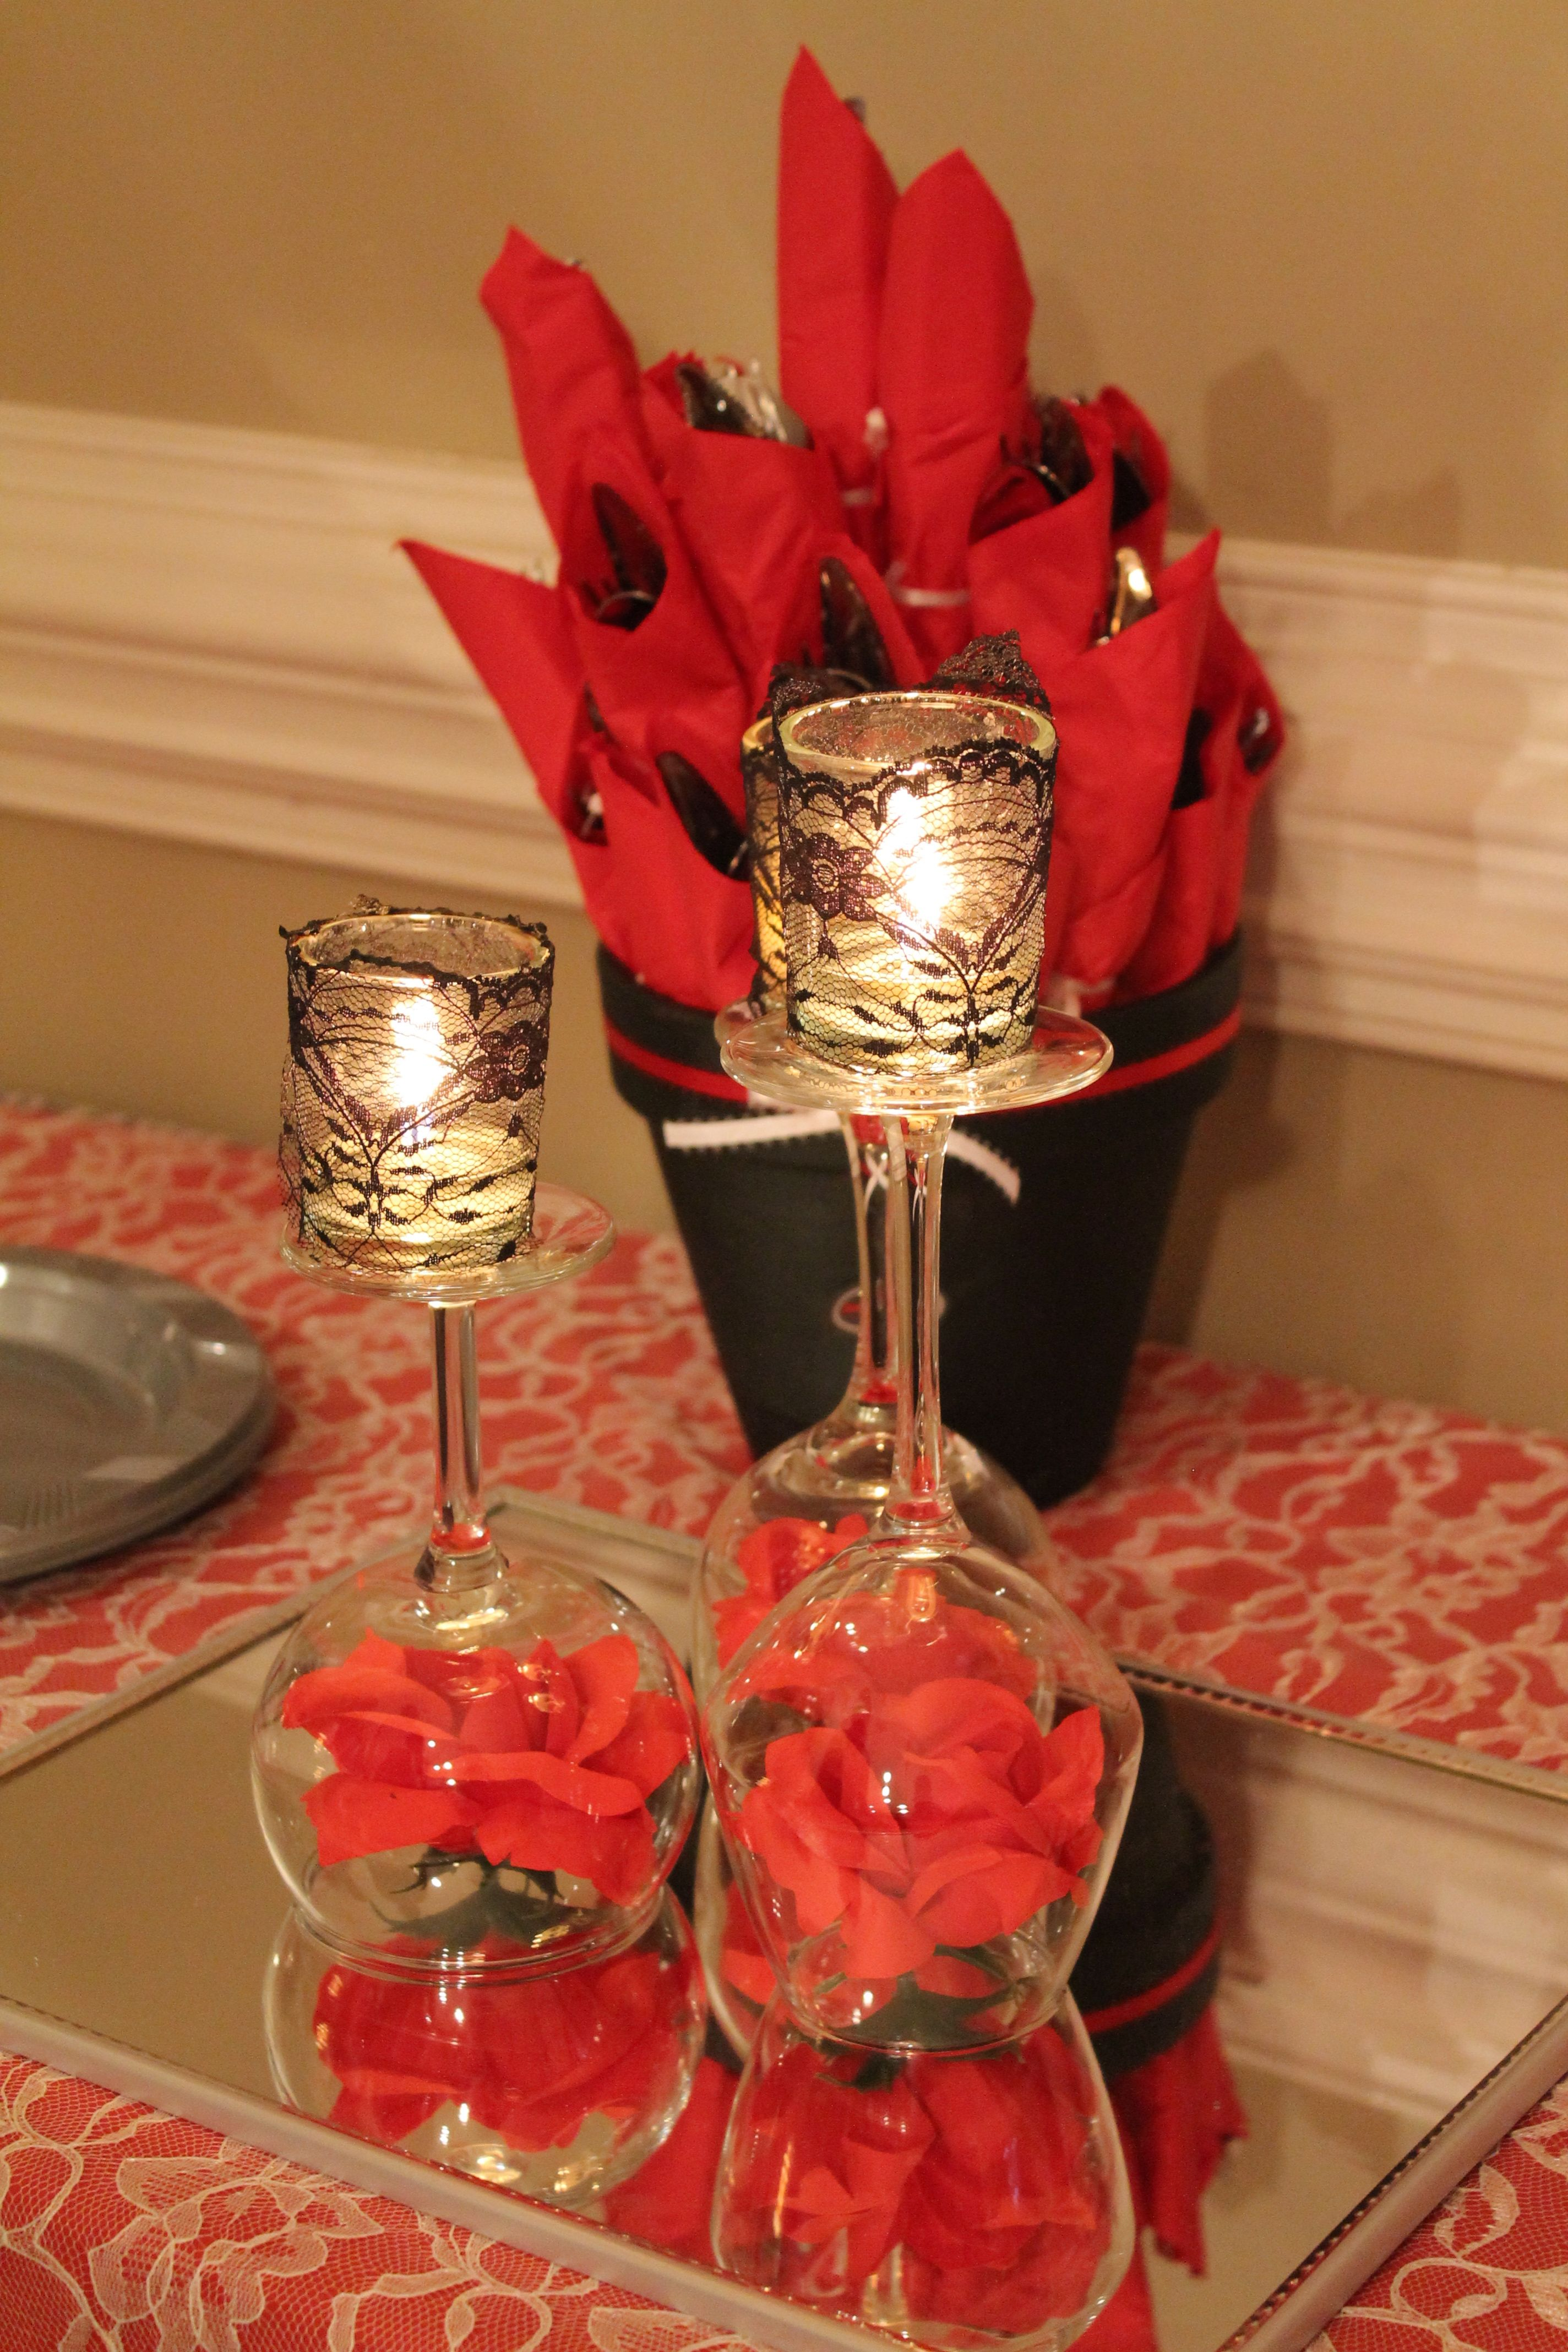 Centerpieces for tables made of upside down wine glasses